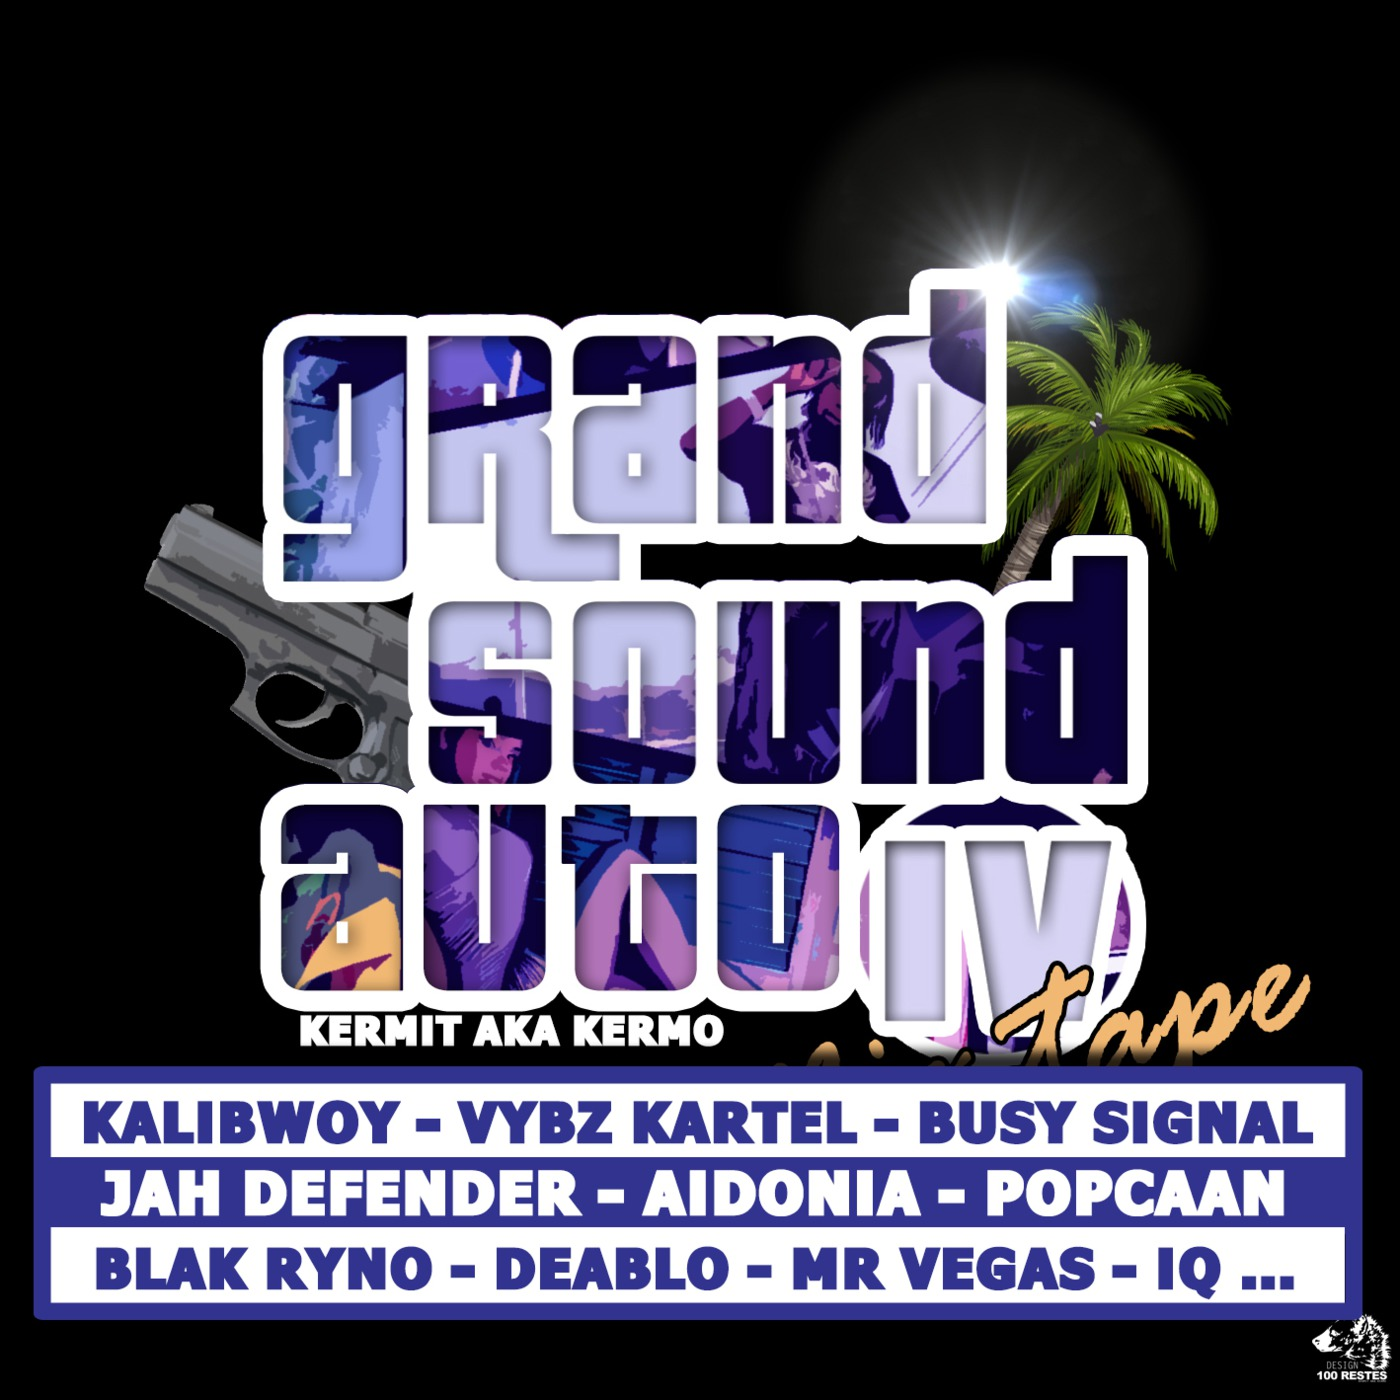 GRAND SOUND AUTO by kermit aka kermo